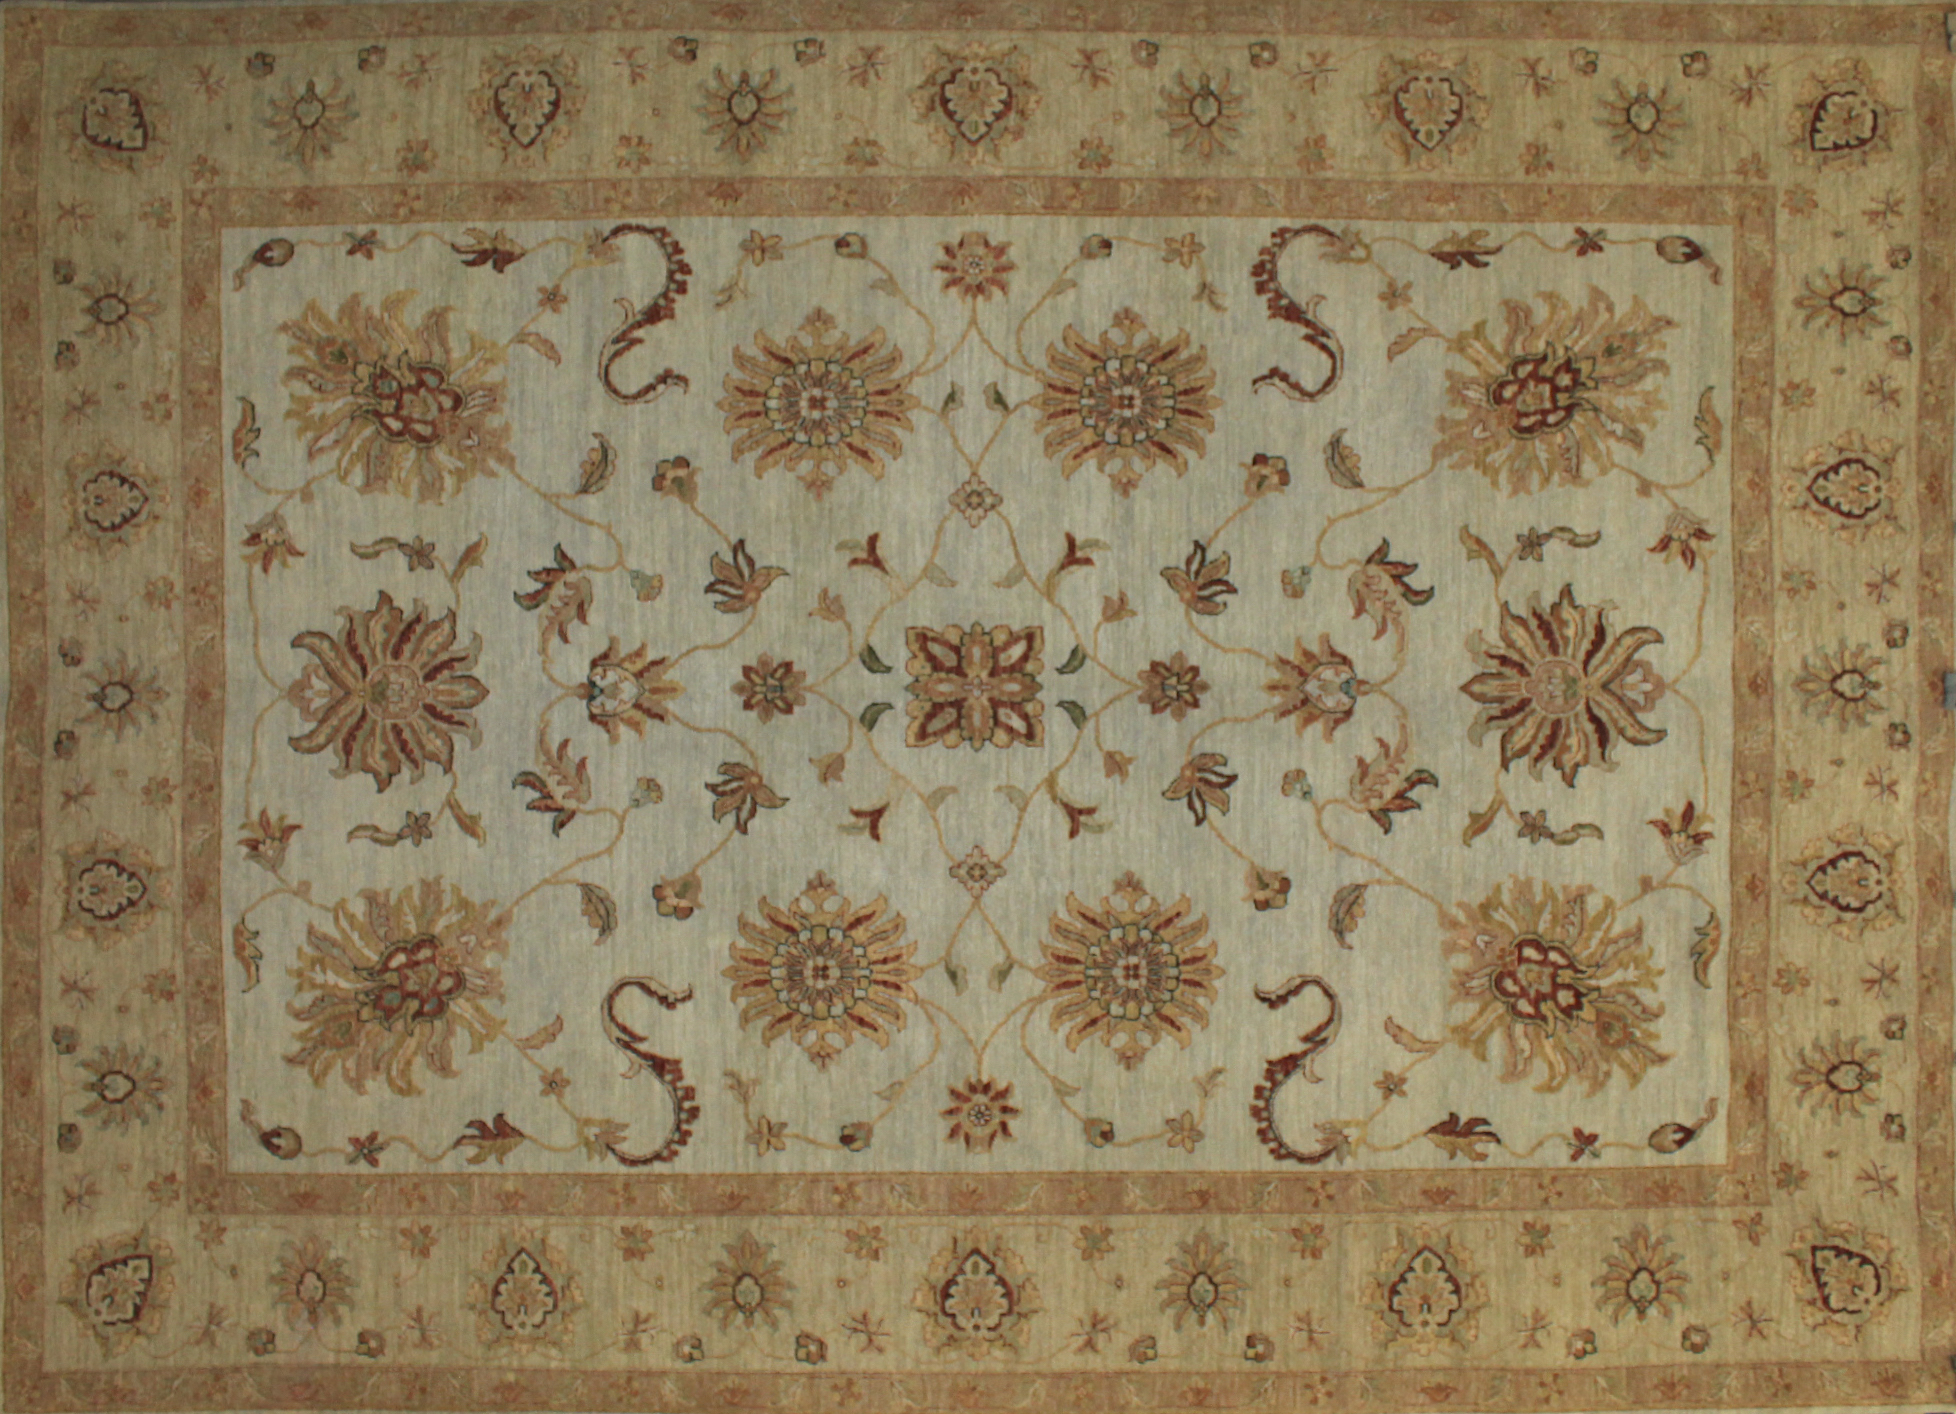 9x12 Traditional Hand Knotted Wool Area Rug - MR7758